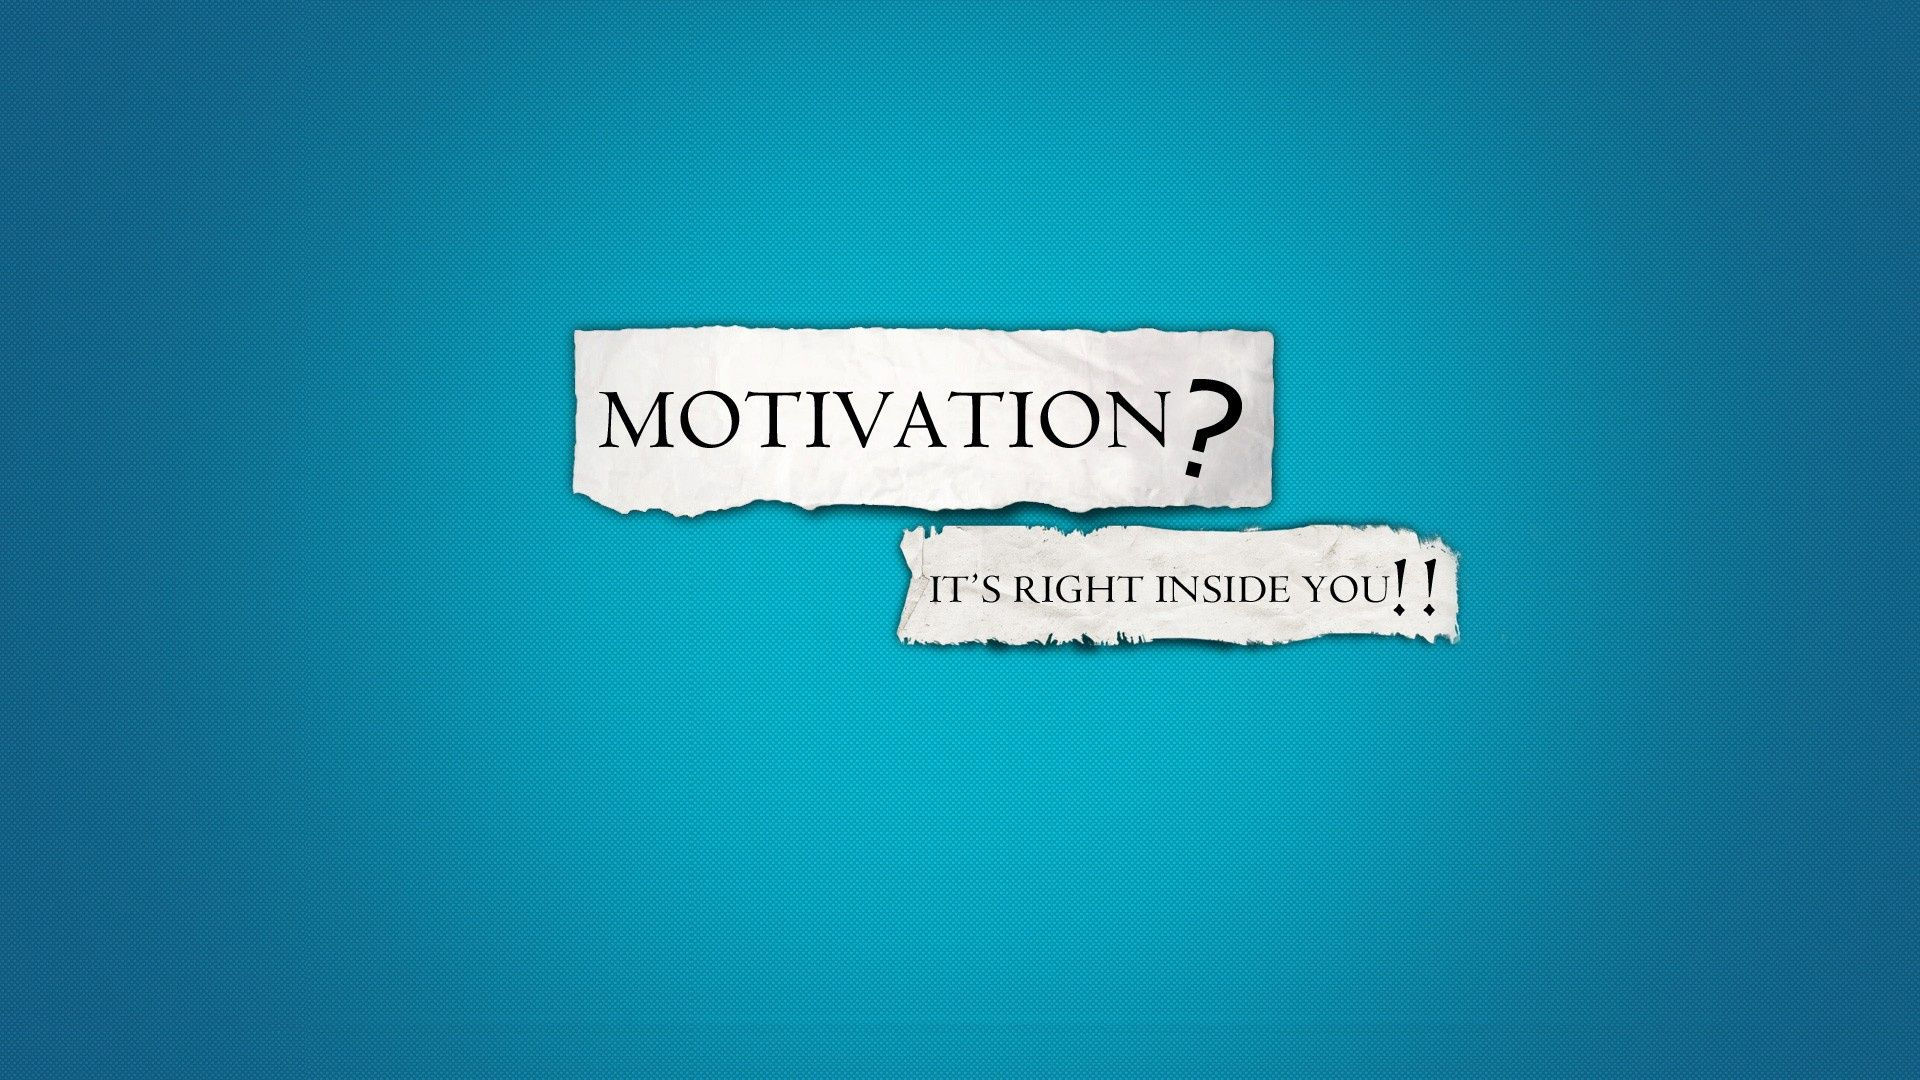 Hd wallpaper motivational - Images Of Motivational With Quotes